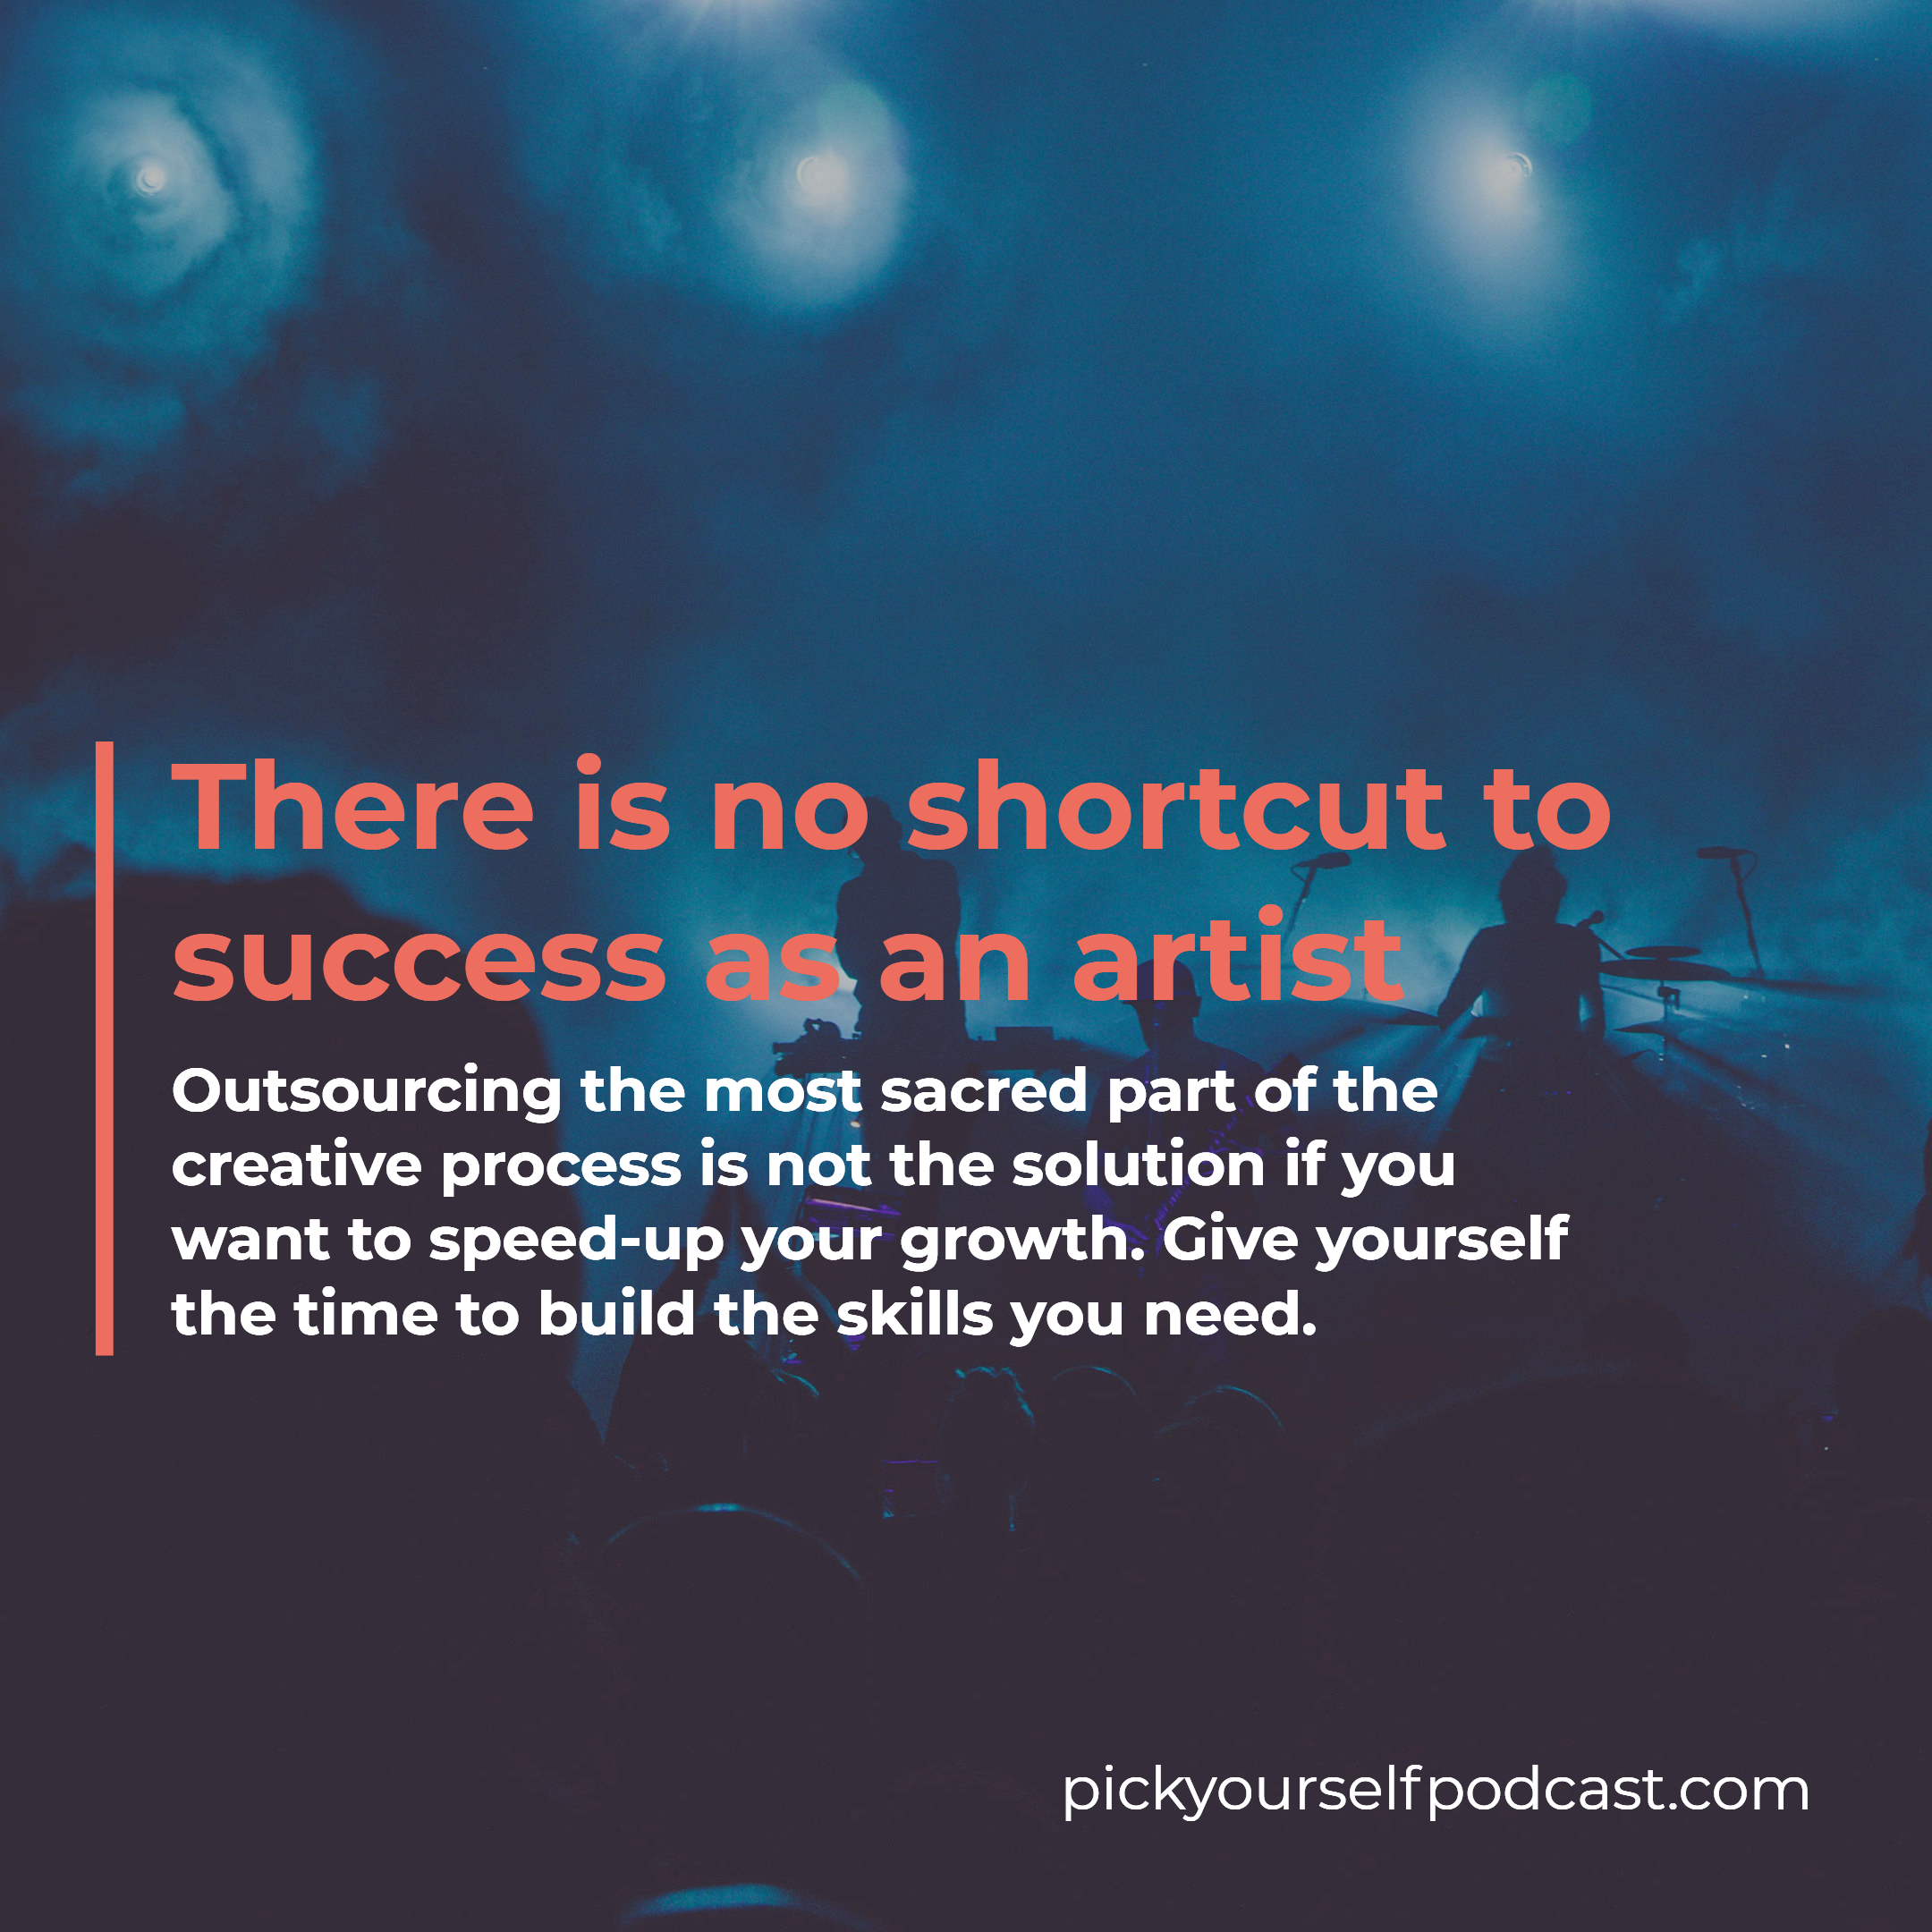 There is no shortcut to success as an artist. Outsourcing via ghost-producing electronic music isn't an option.